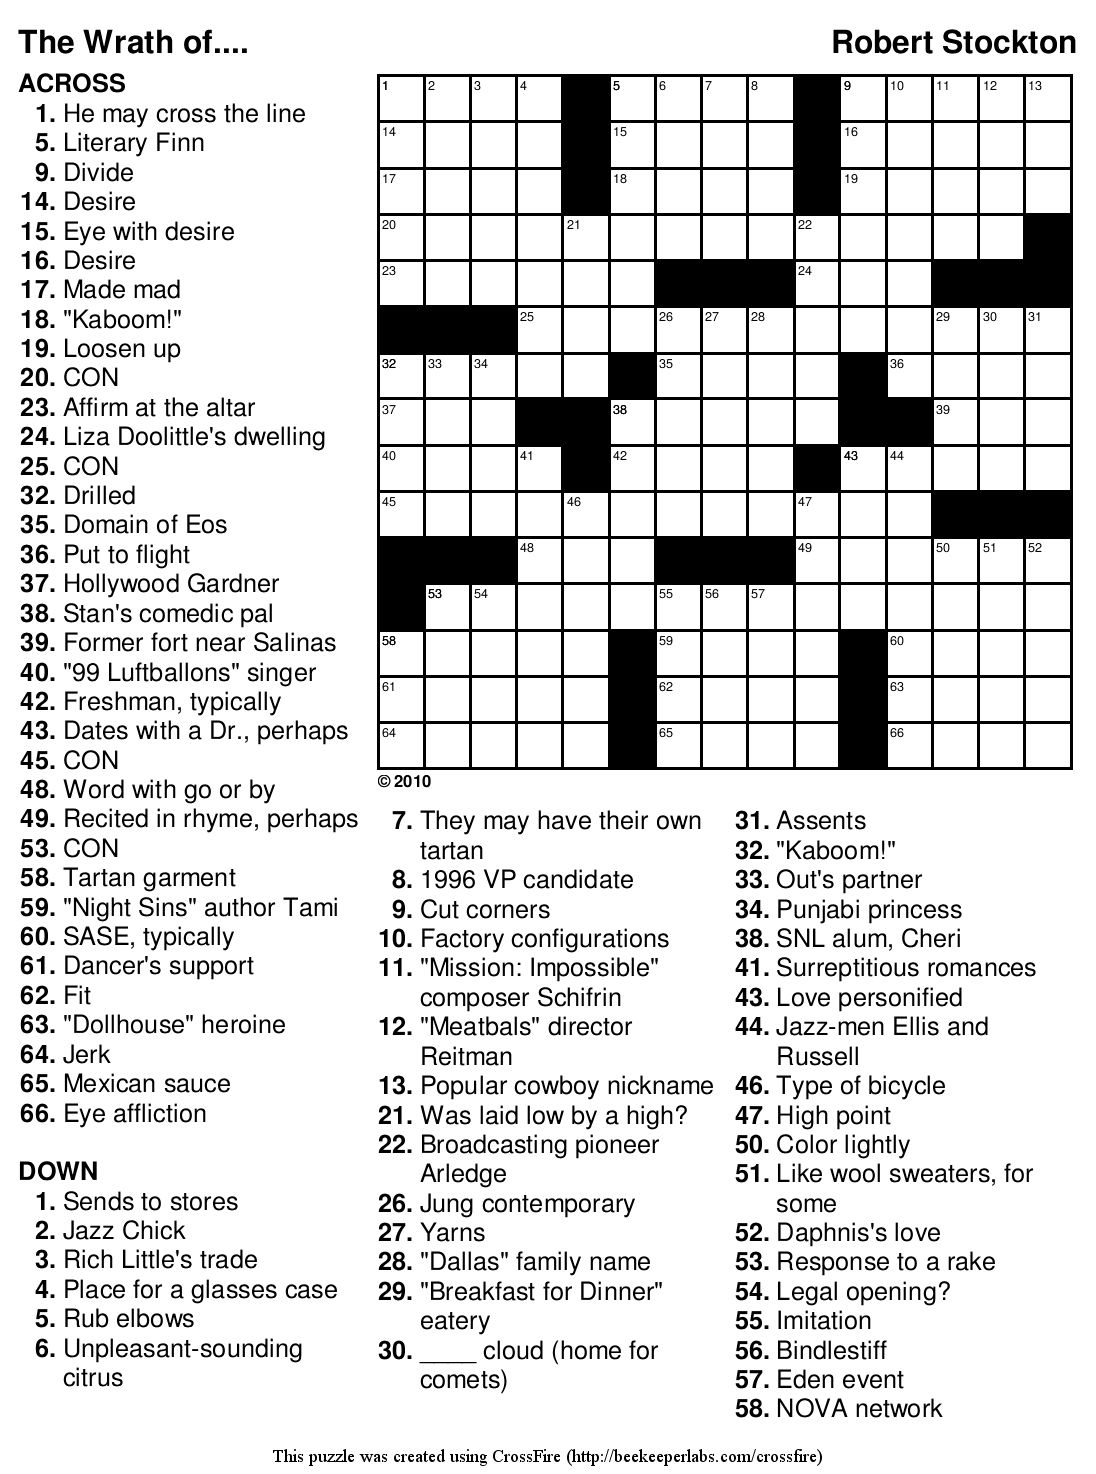 Marvelous Crossword Puzzles Easy Printable Free Org | Chas's Board - Find Free Printable Crossword Puzzles